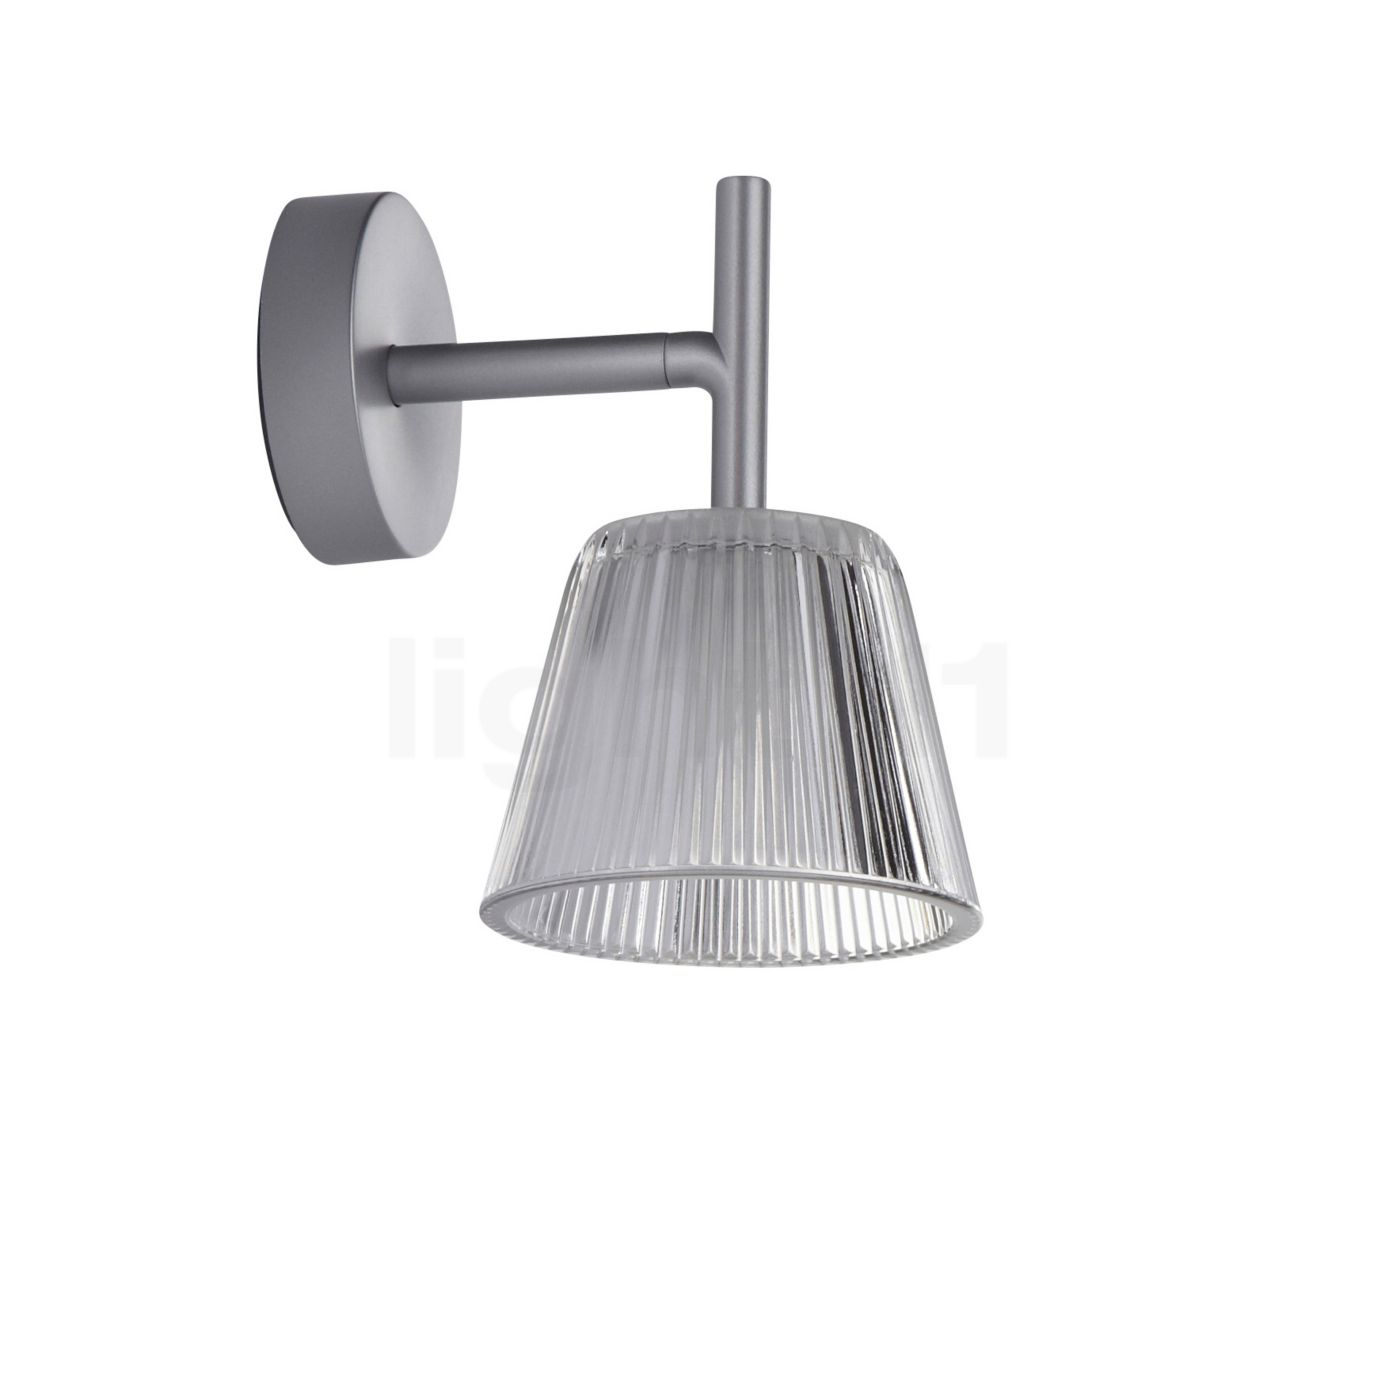 Flos Romeo Babe W Wall lights buy at light11.eu